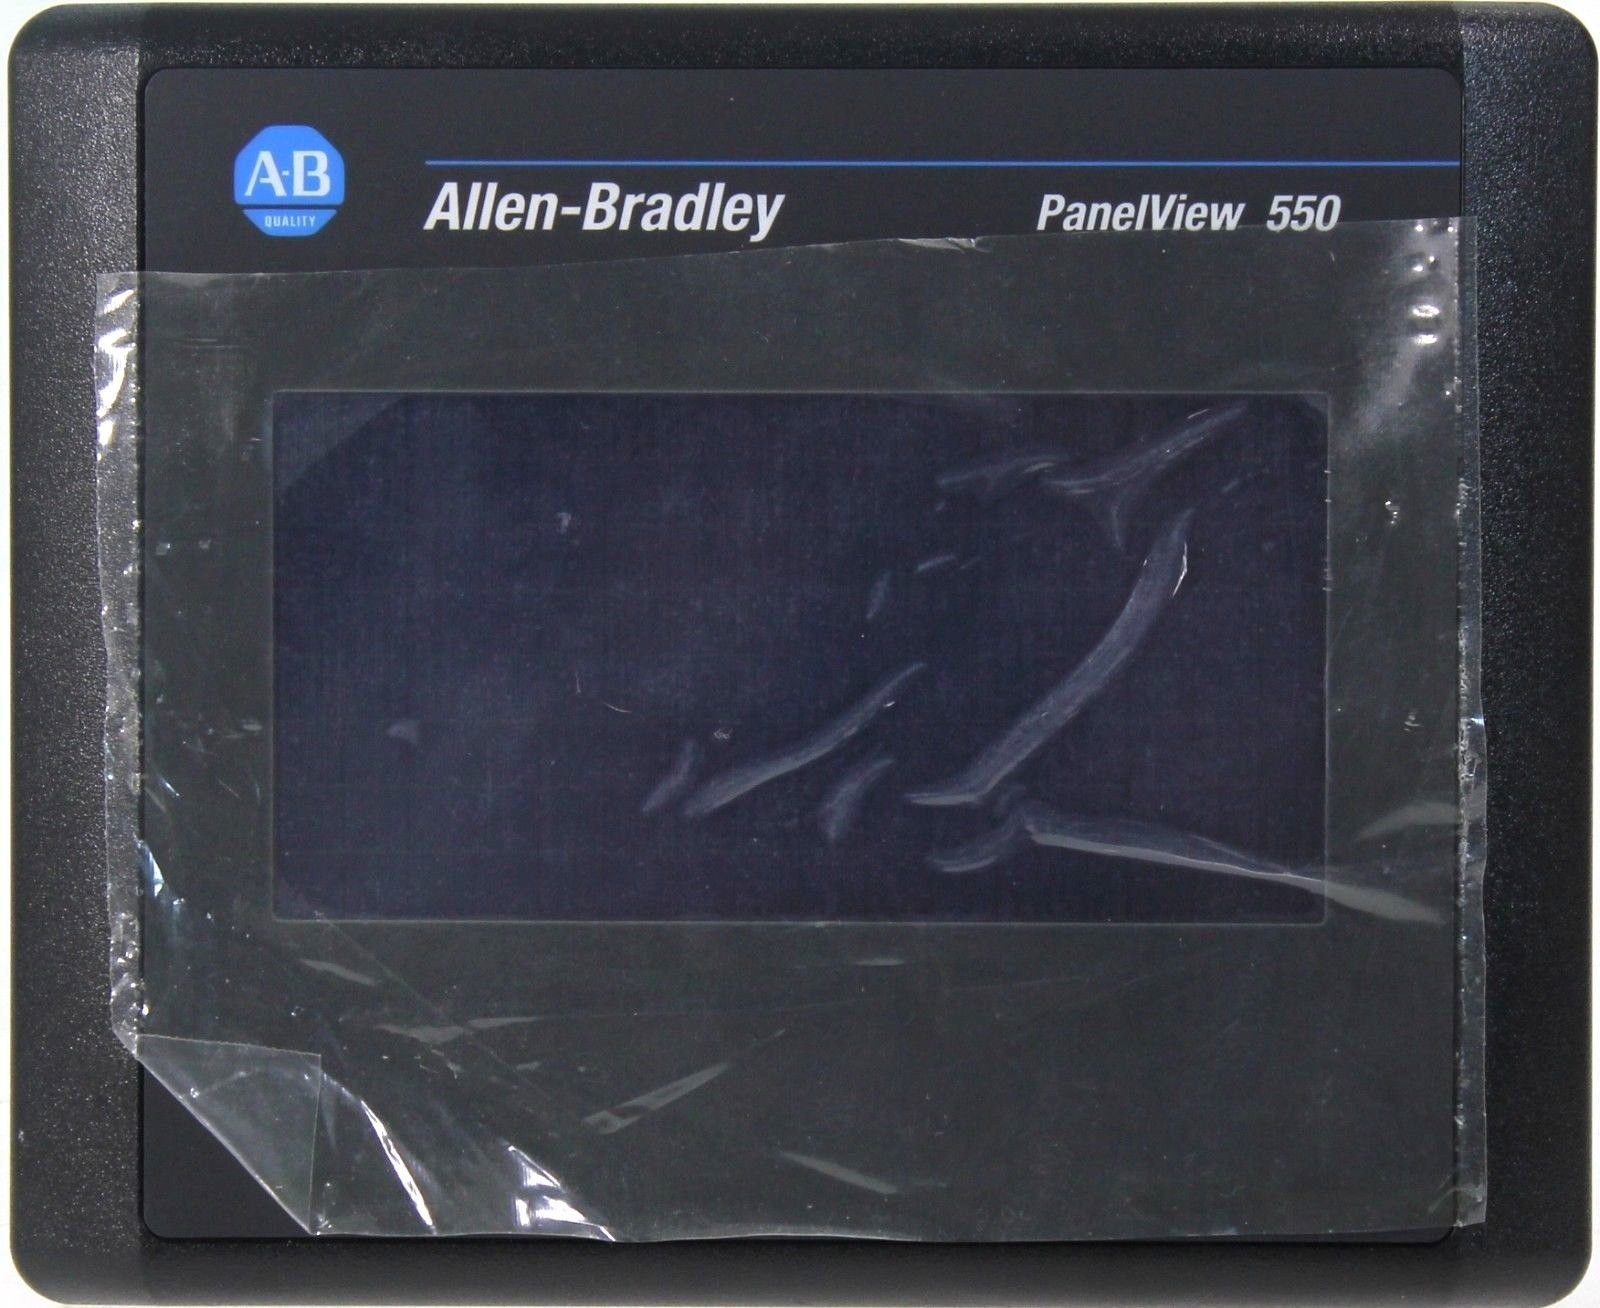 New Allen Bradley PanelView 550 2711-T5A9L1 Series B FW 4.48 24VDC RS232 Printer